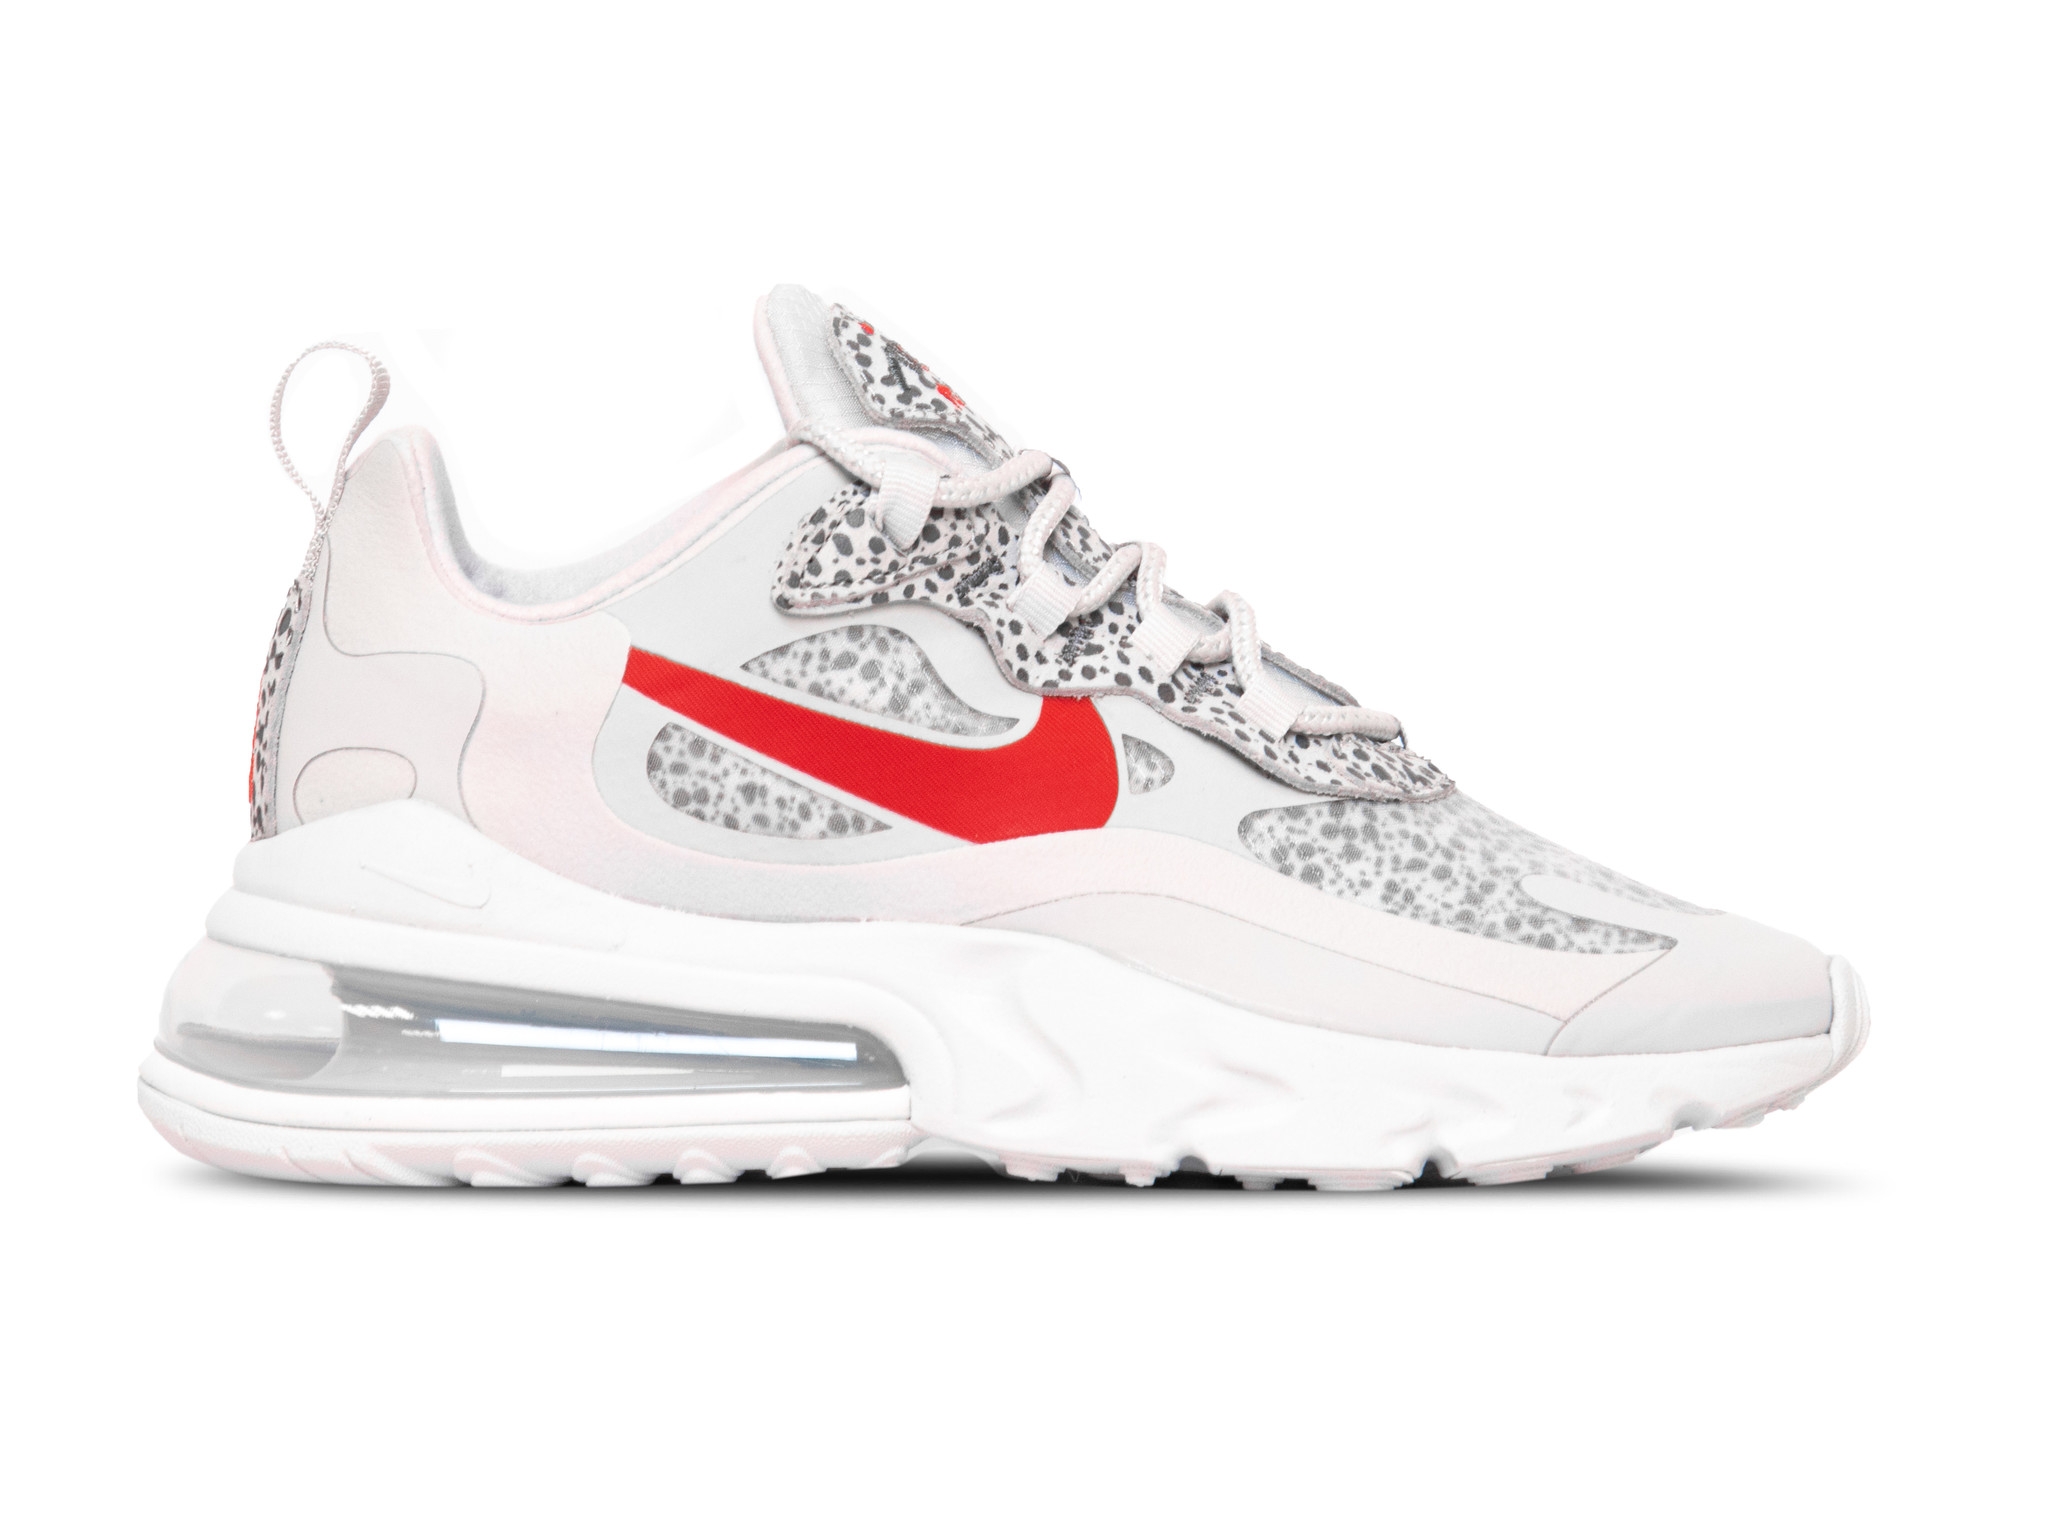 Nike Air Max 270 React Neutral Grey University Red CT2535